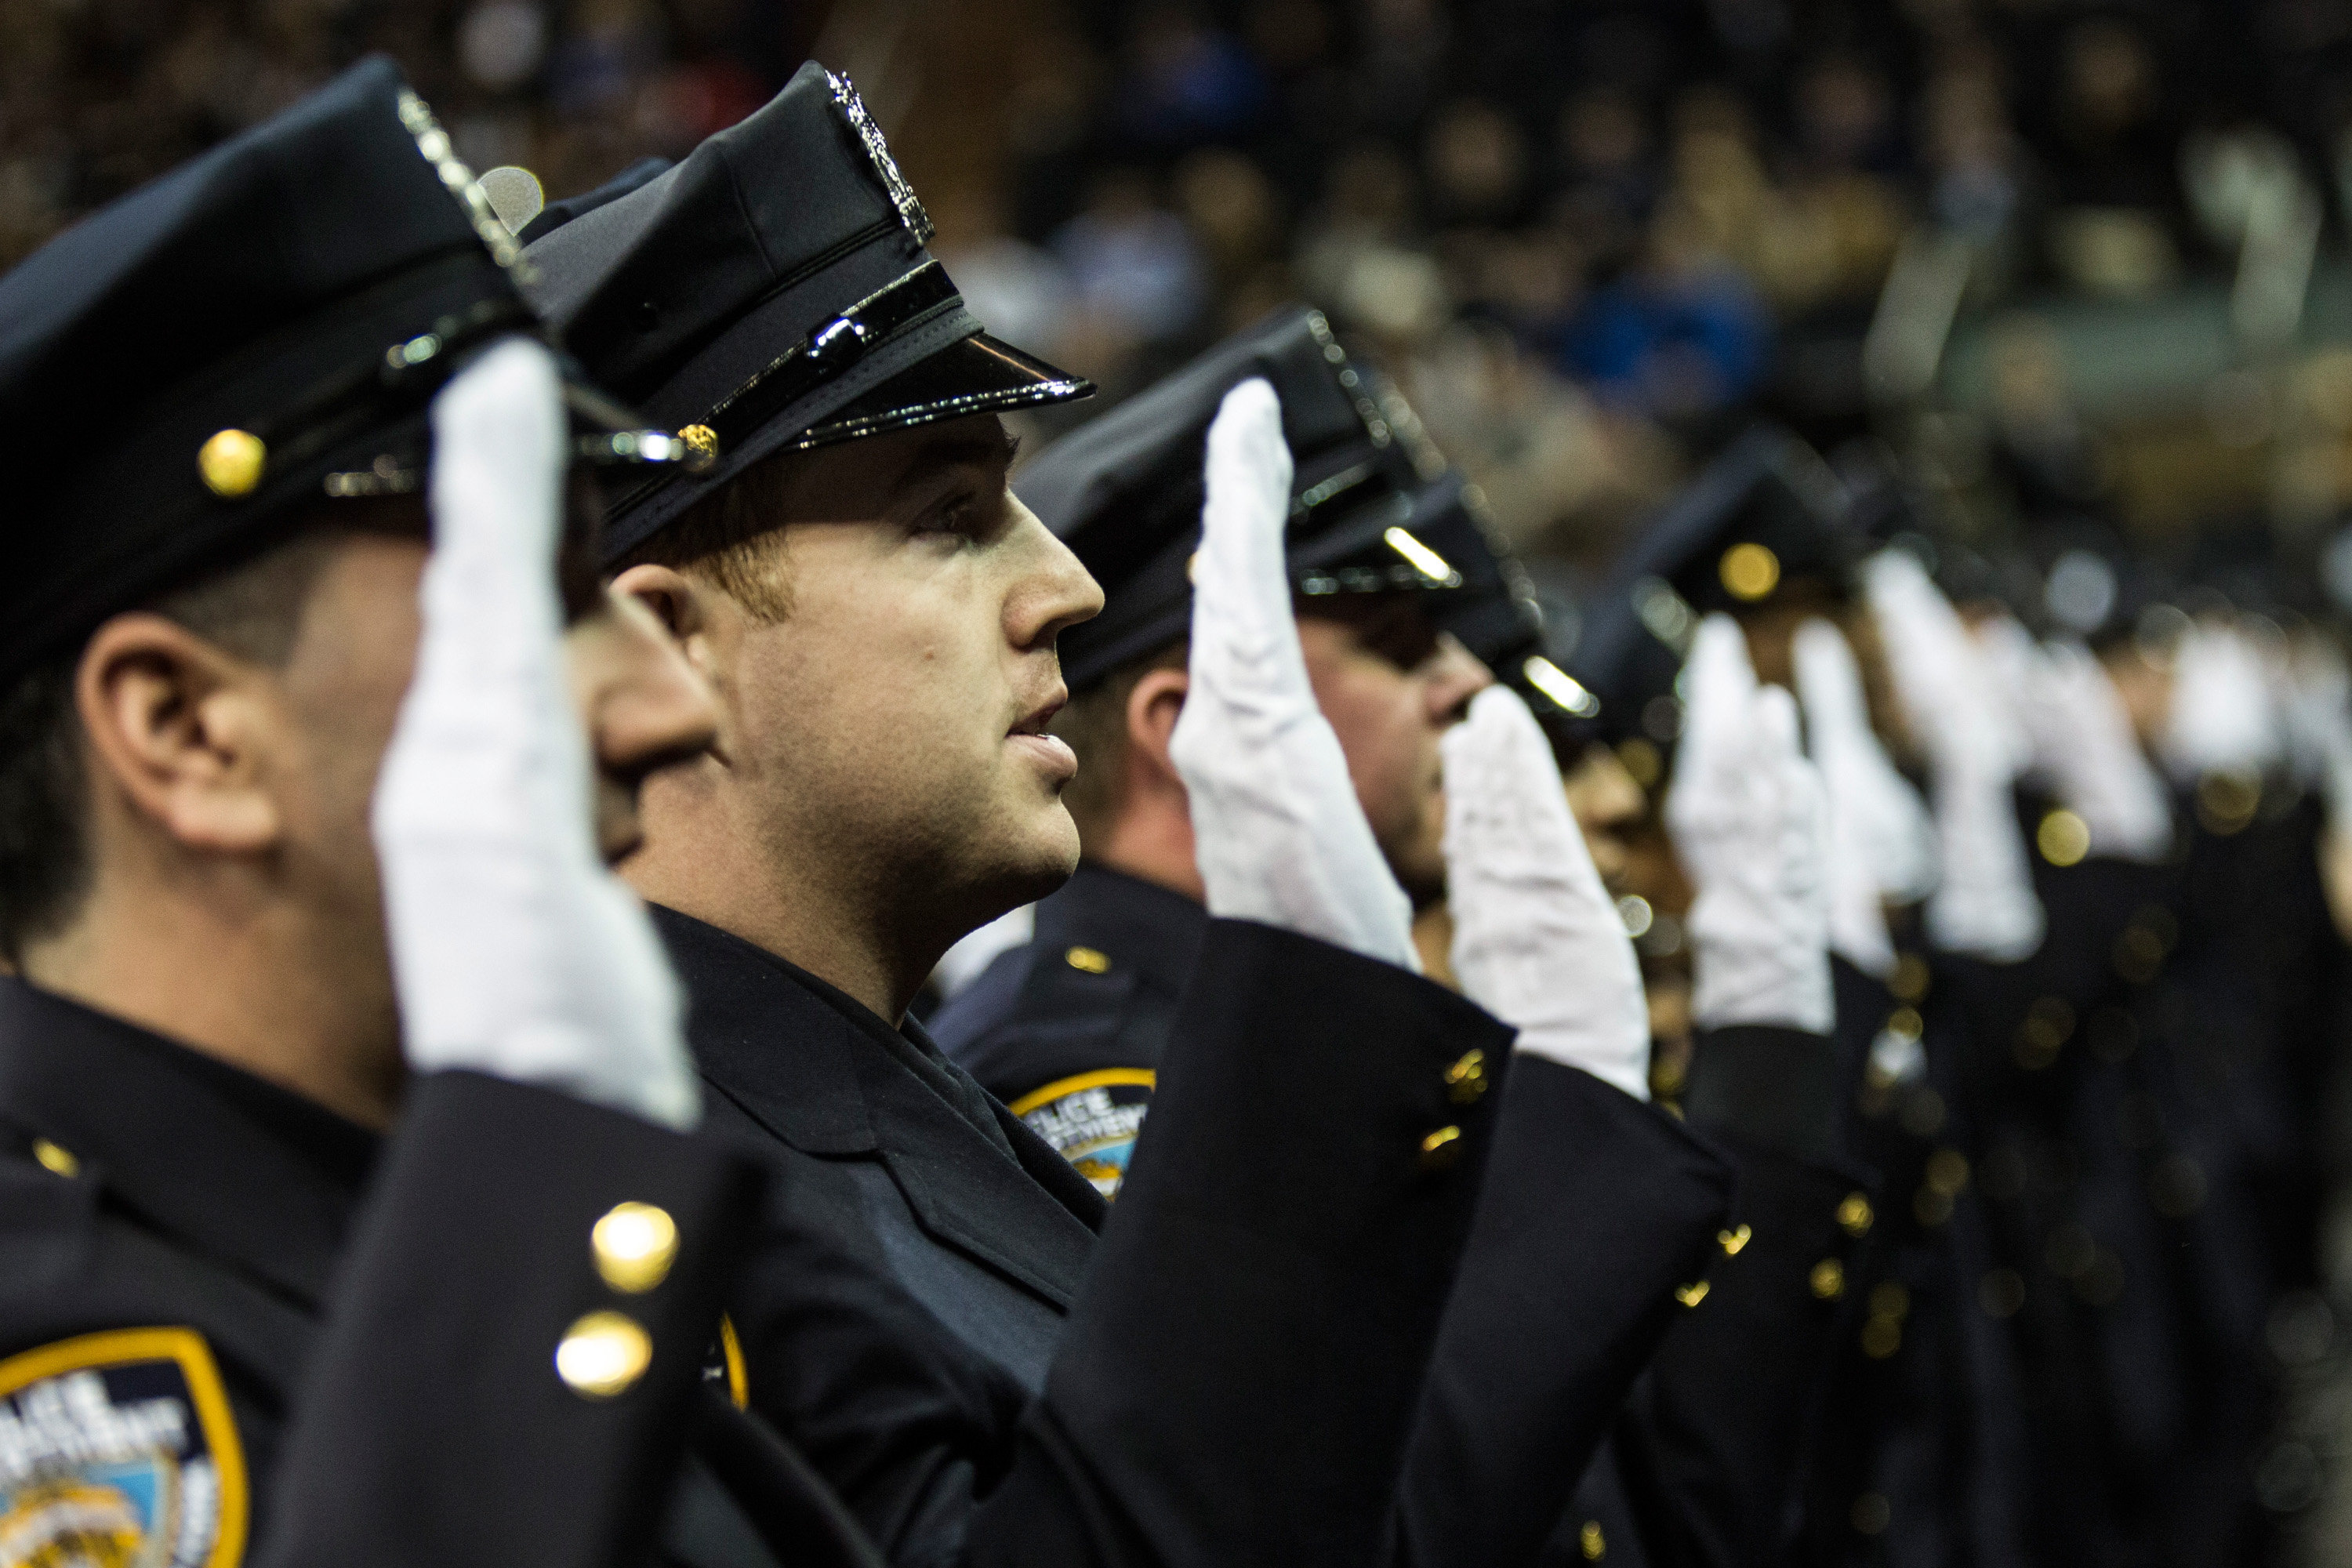 Police-Community Collaboration: America's Public Safety Lifeline